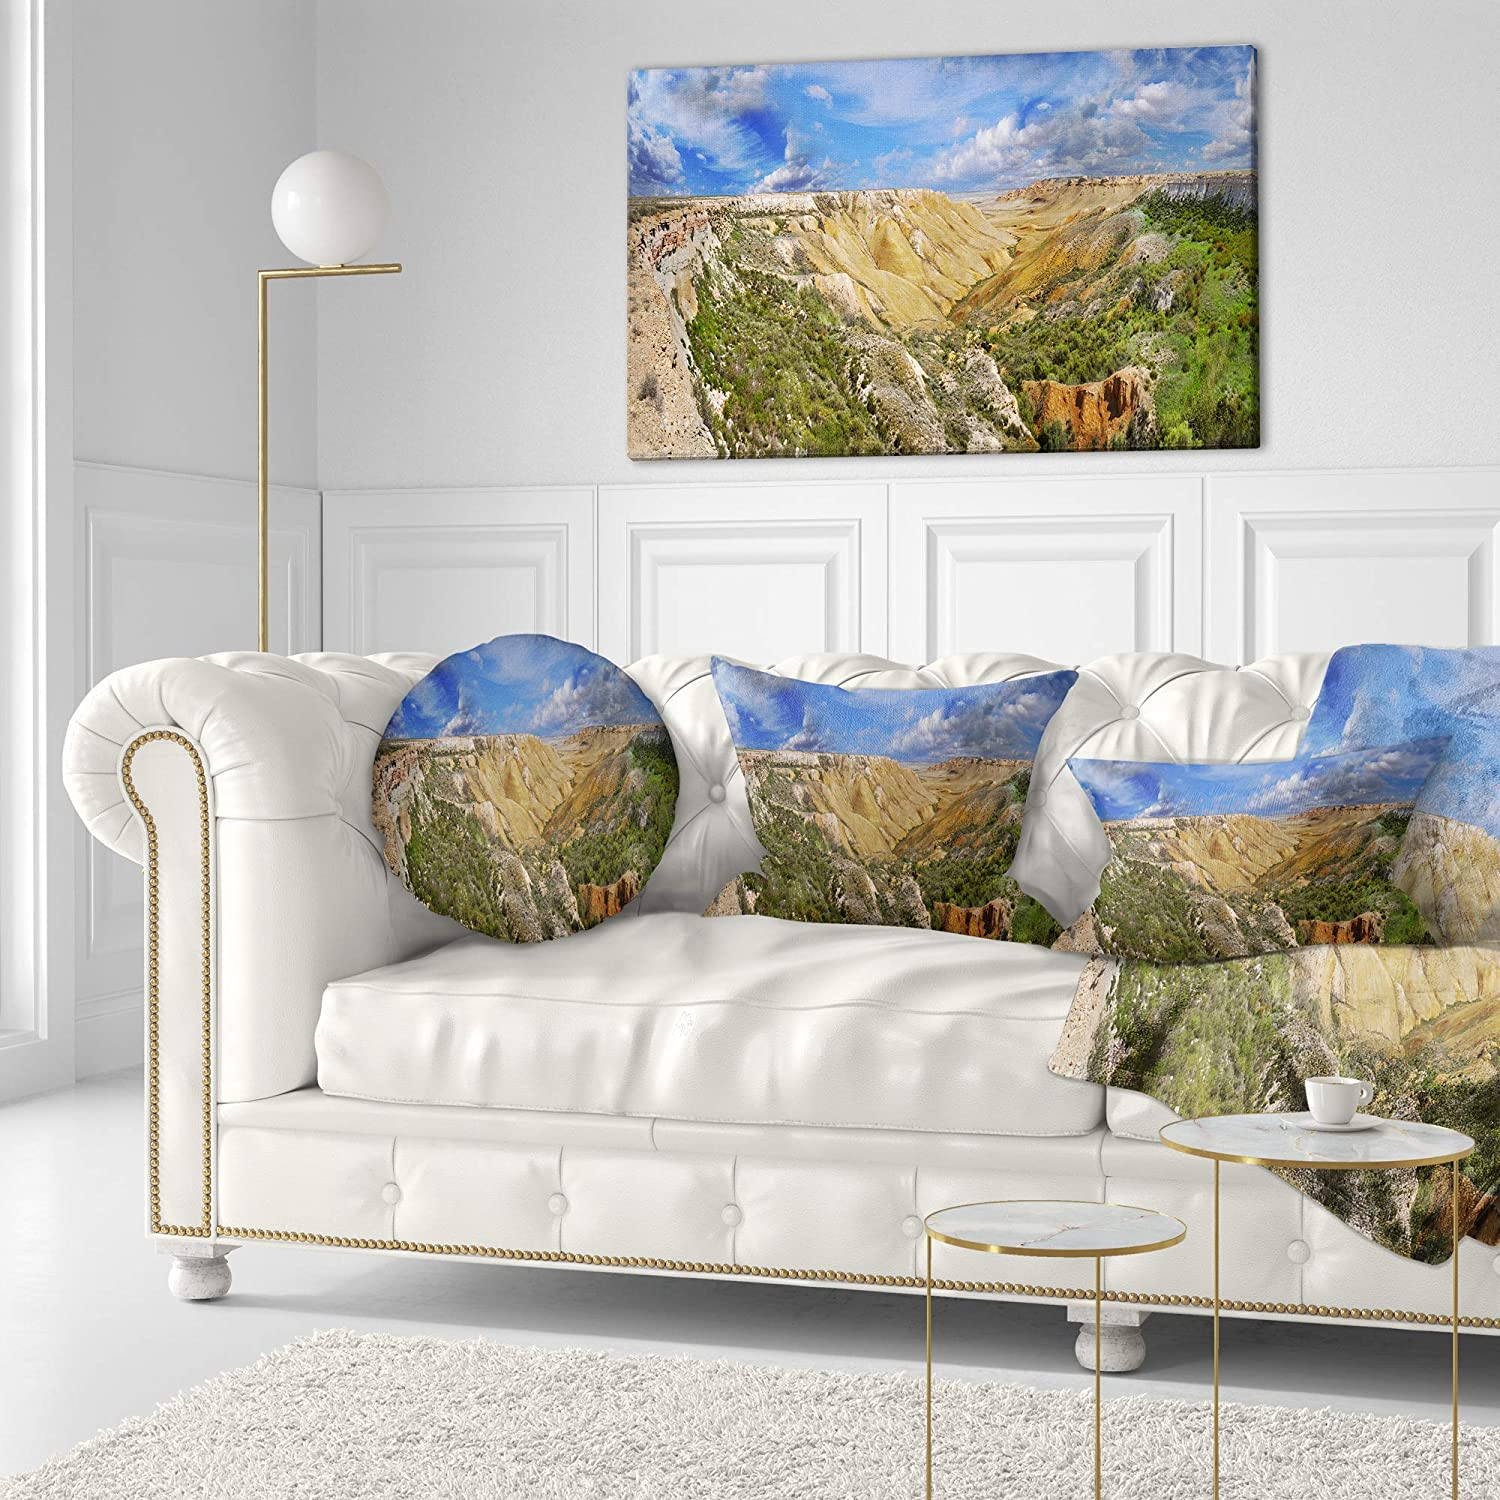 Insert Side Sofa Throw Pillow 20 Designart CU15269-20-20-C Canyon on Slopes of Plateau Ustyurt Landscape Printed Round Cushion Cover for Living Room